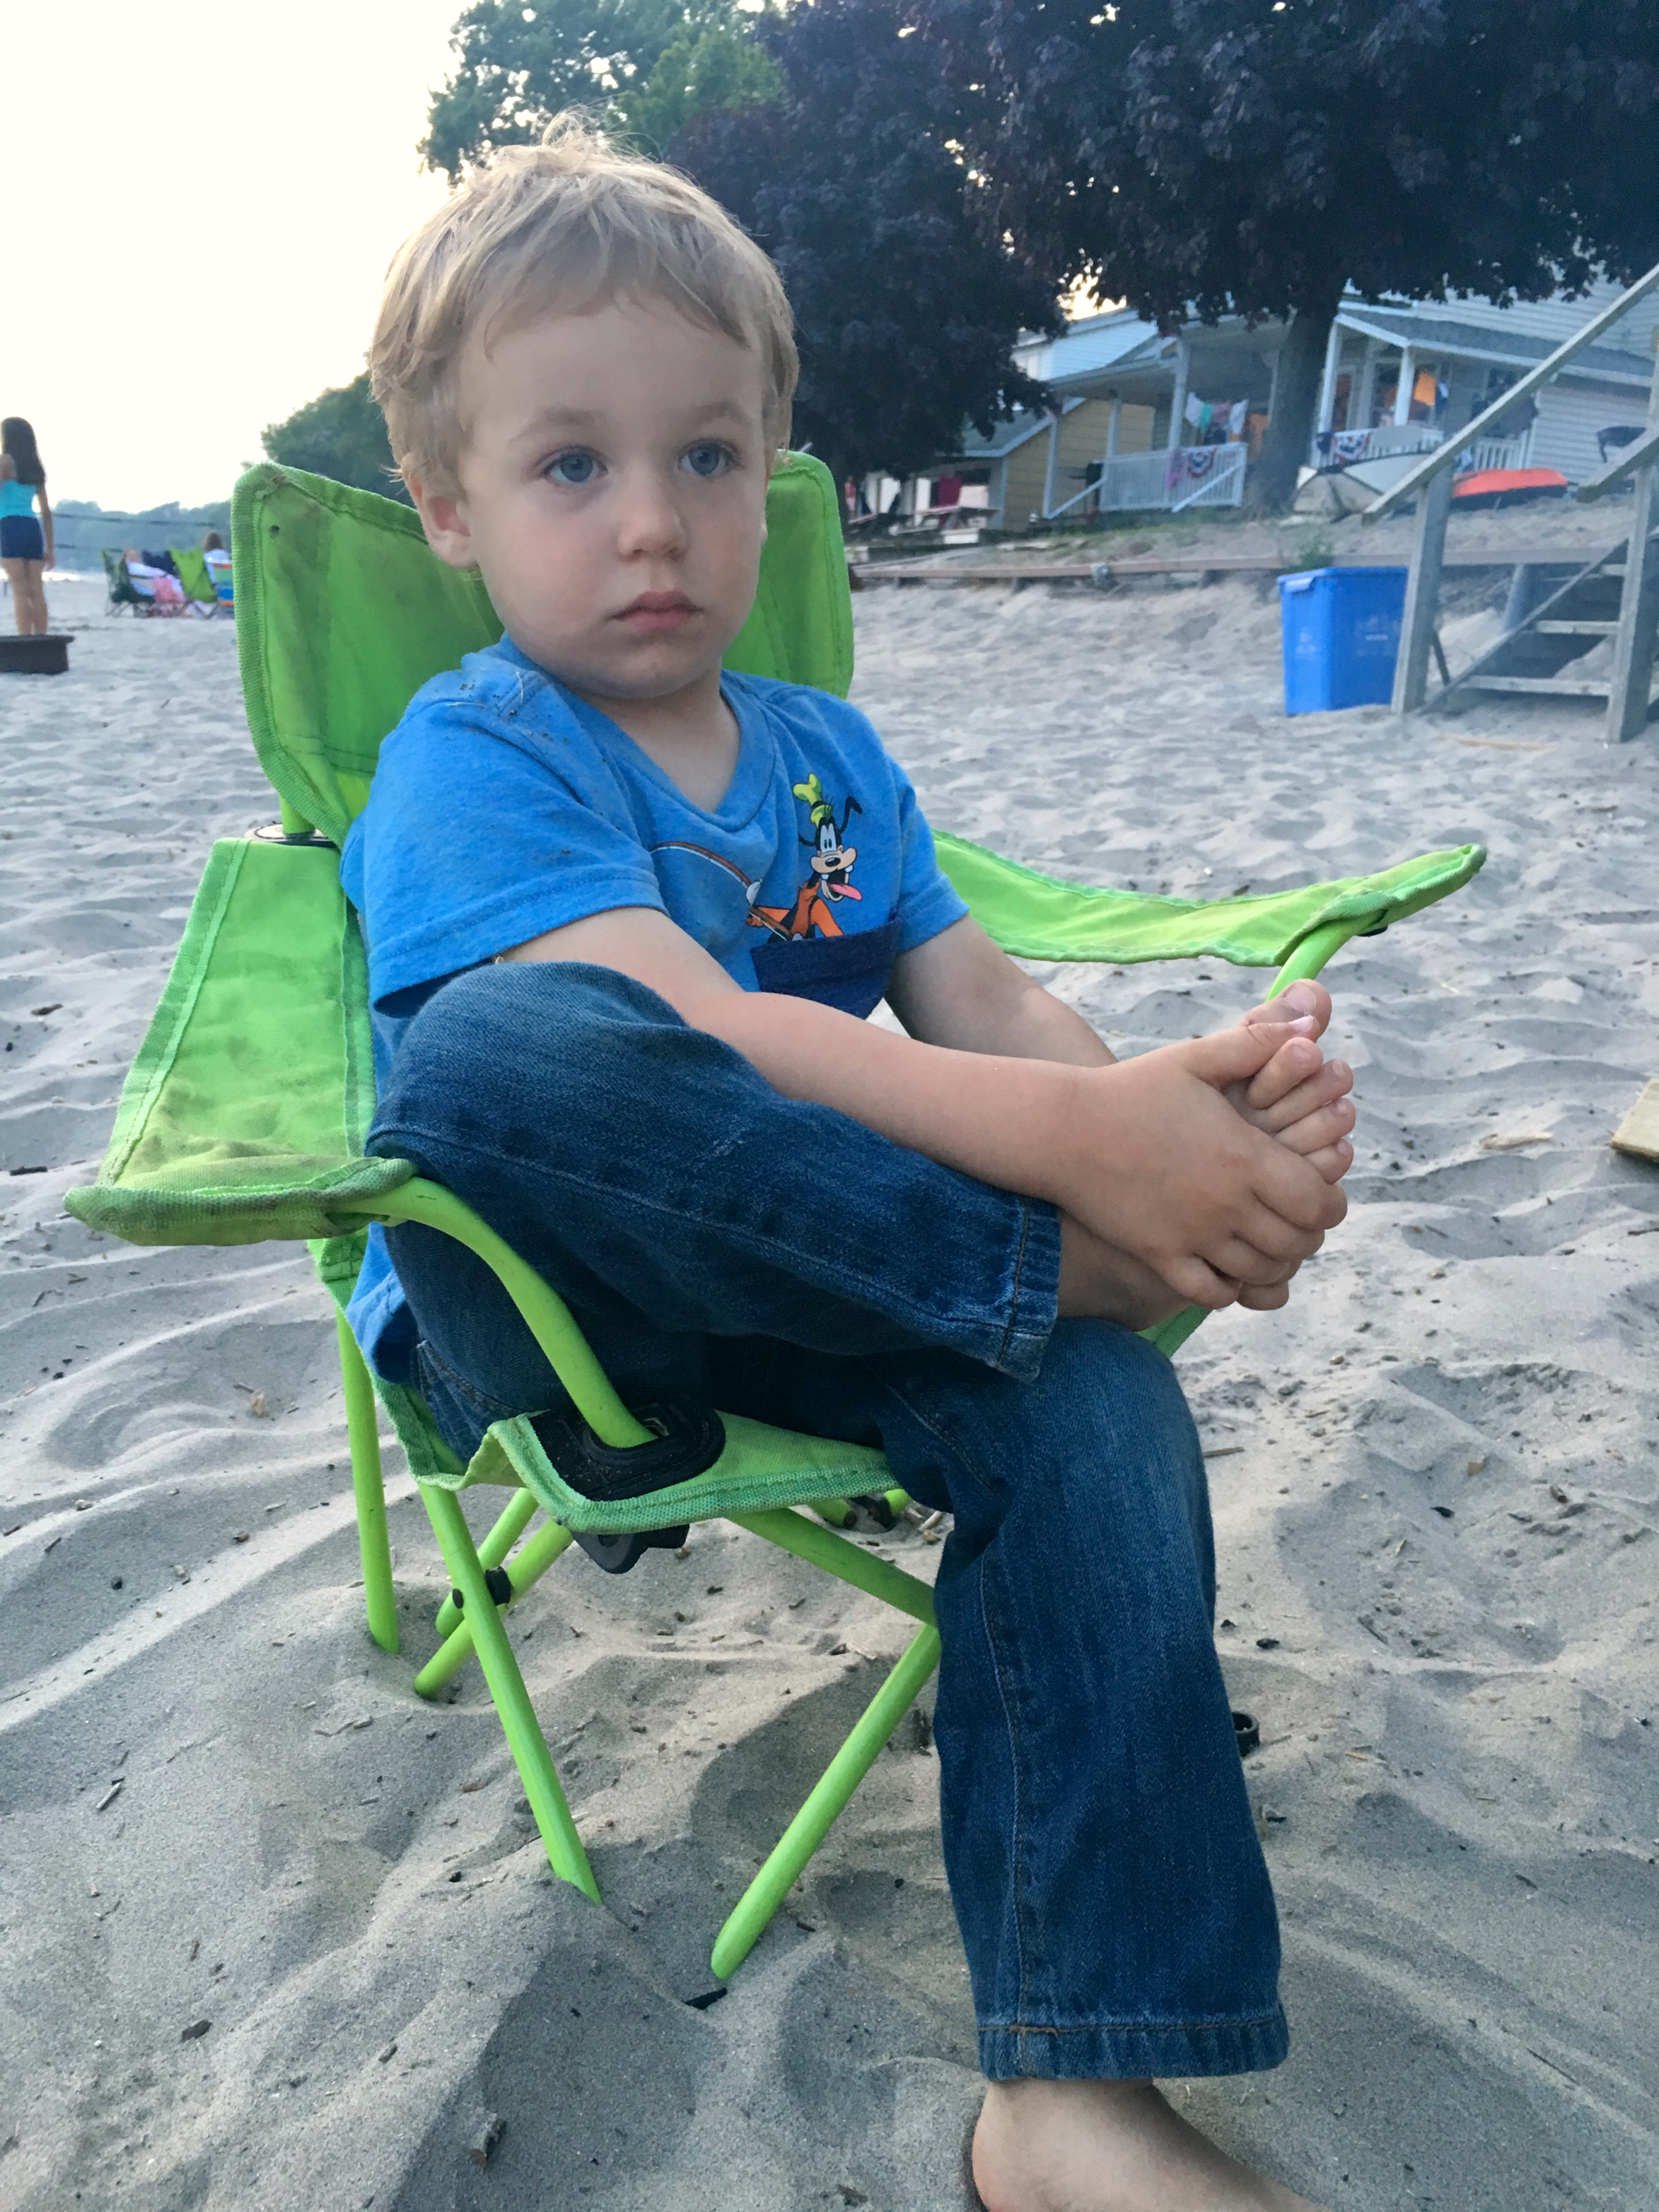 Sleepy guy at the beach fire